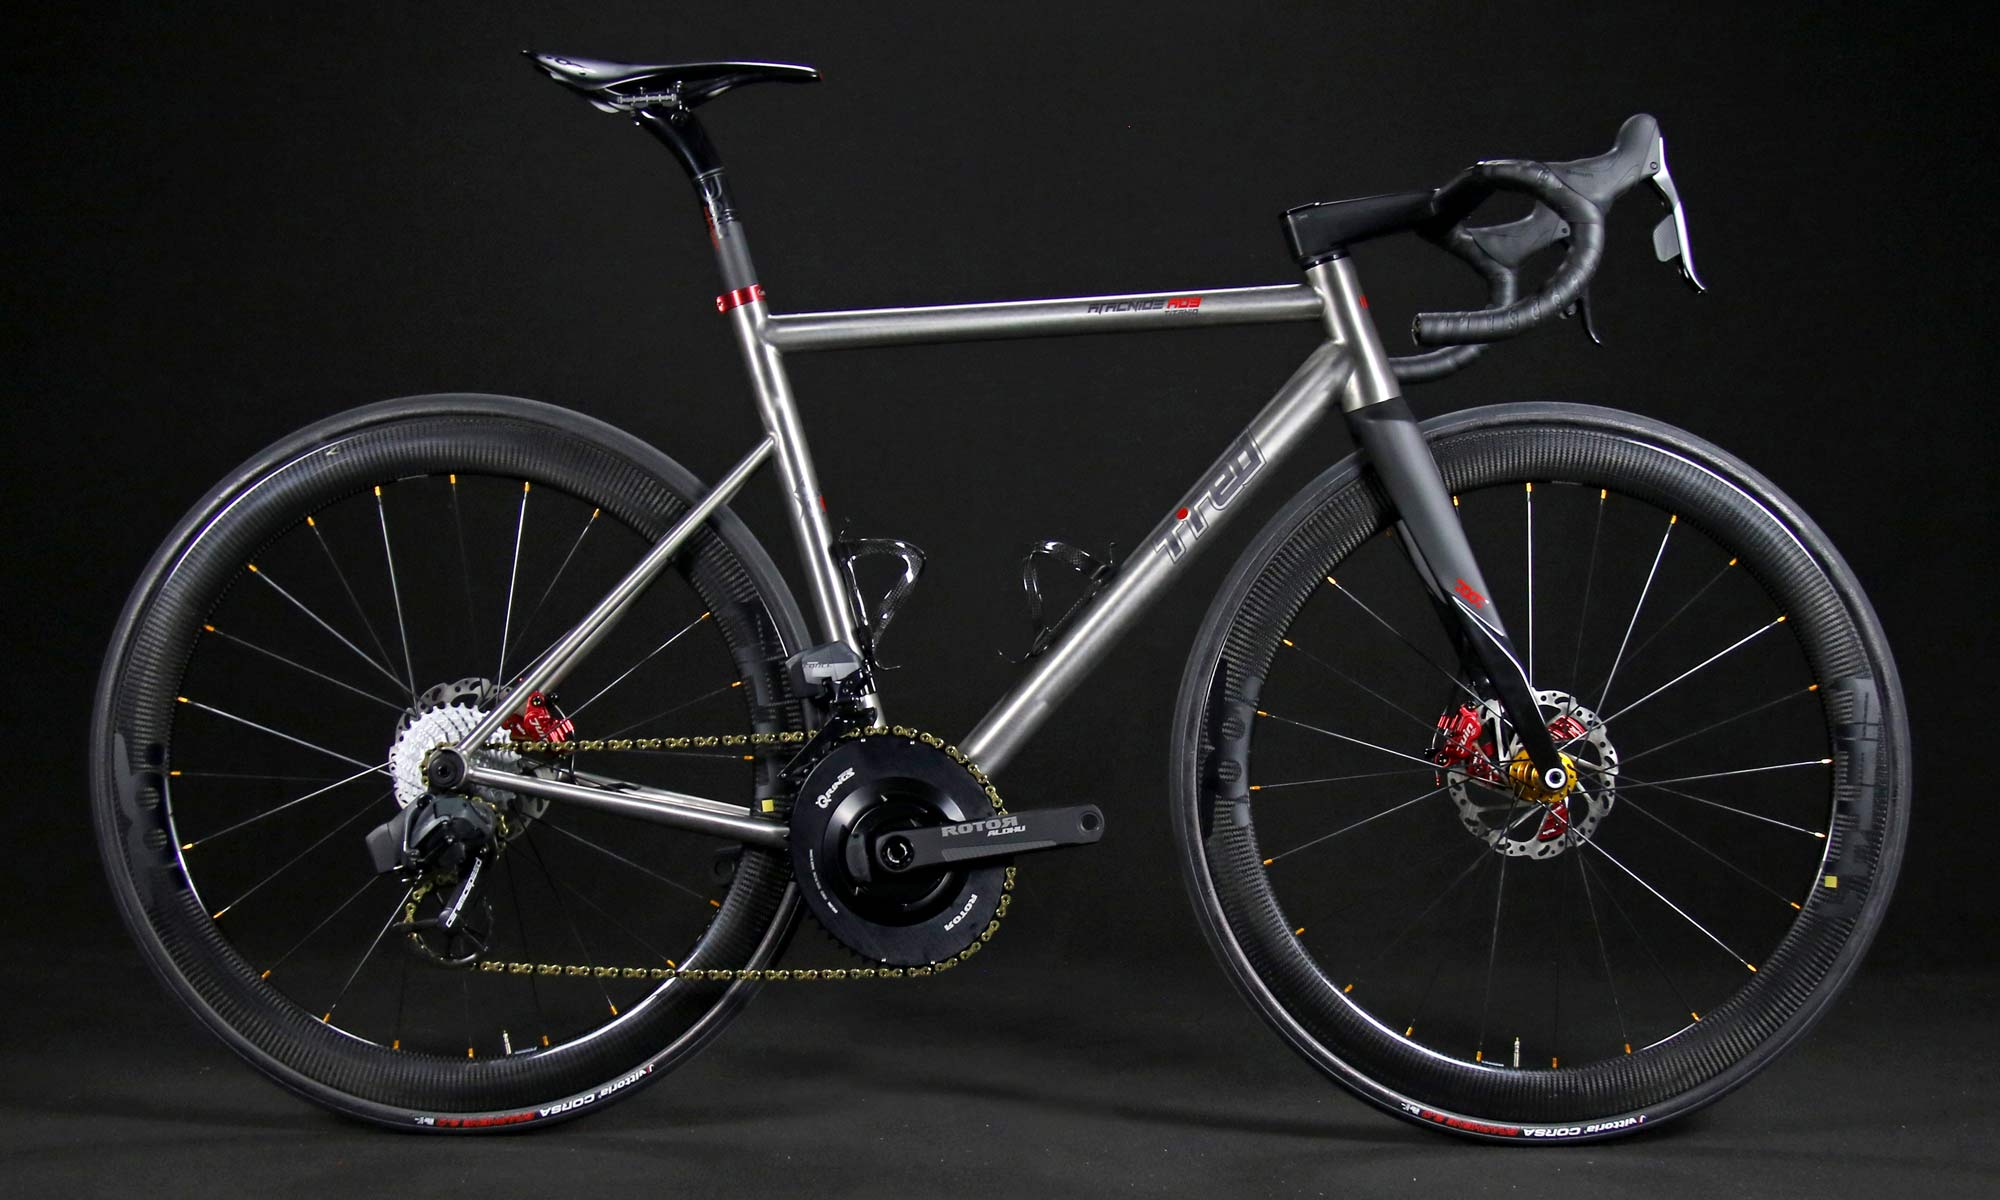 TRed Arcanide A03 Venti to road bike, fully-integrated internal cable routing custom titanium road bike,complete